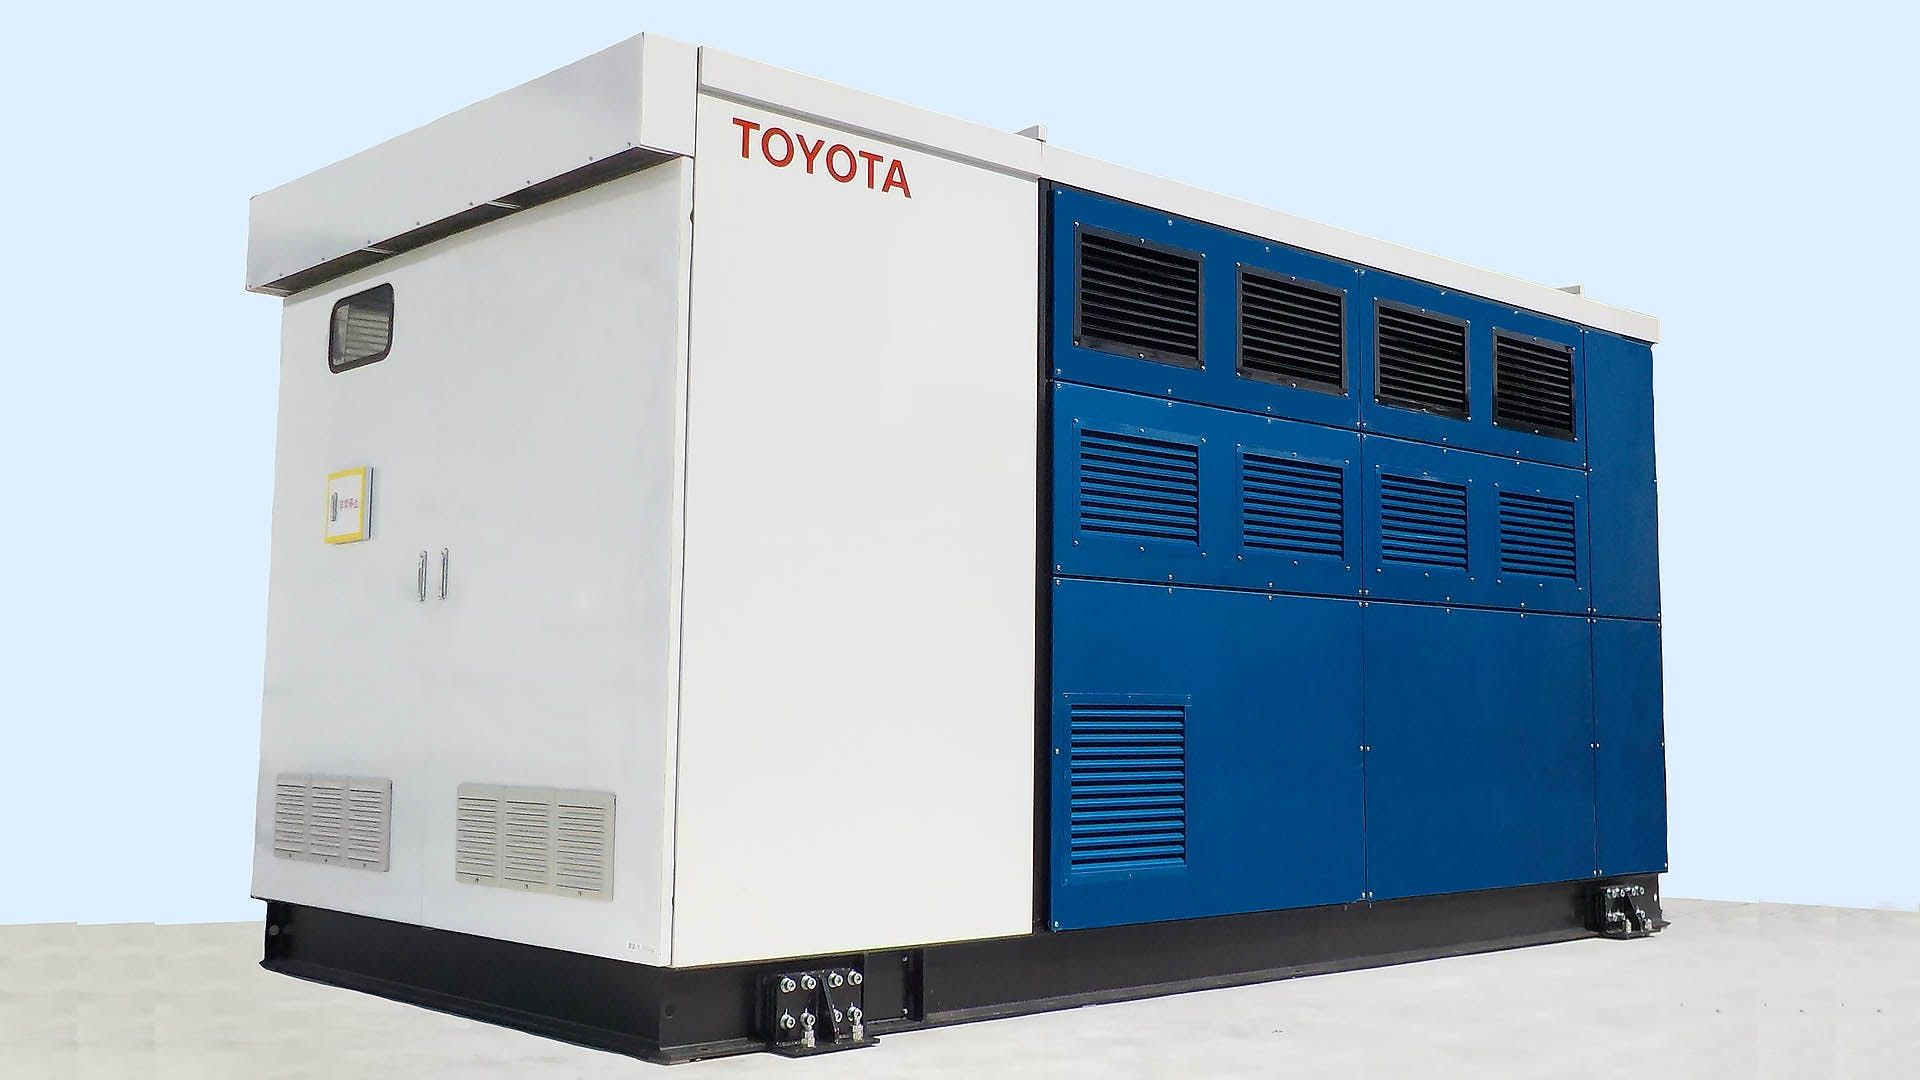 With Toyota's Hydrogensets, Tesla Soon Can Dump Diesel